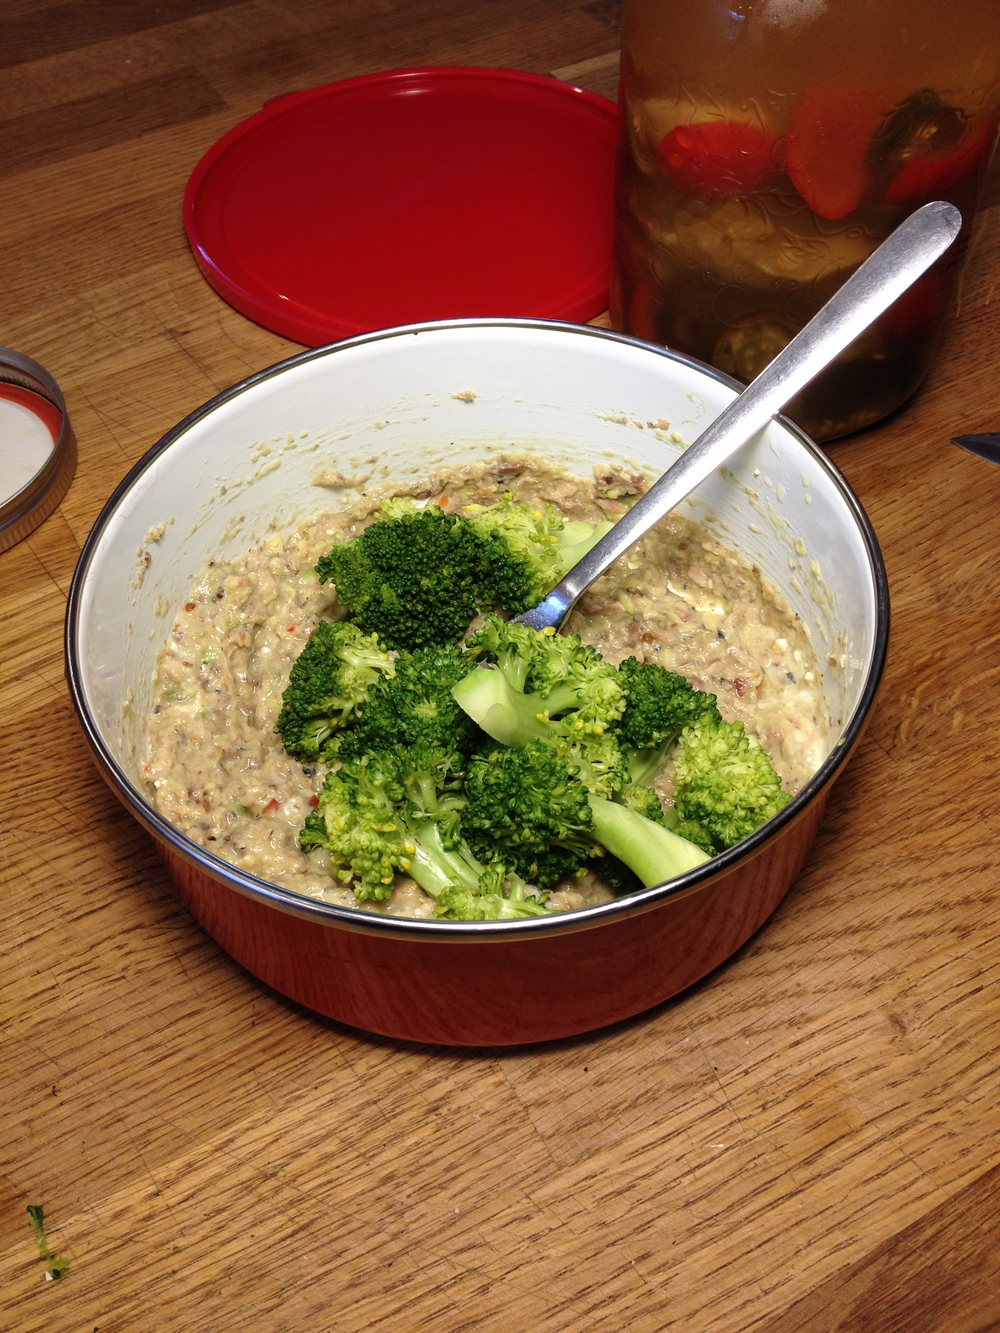 The mashed ingredients cited above, with the steamed broccoli.